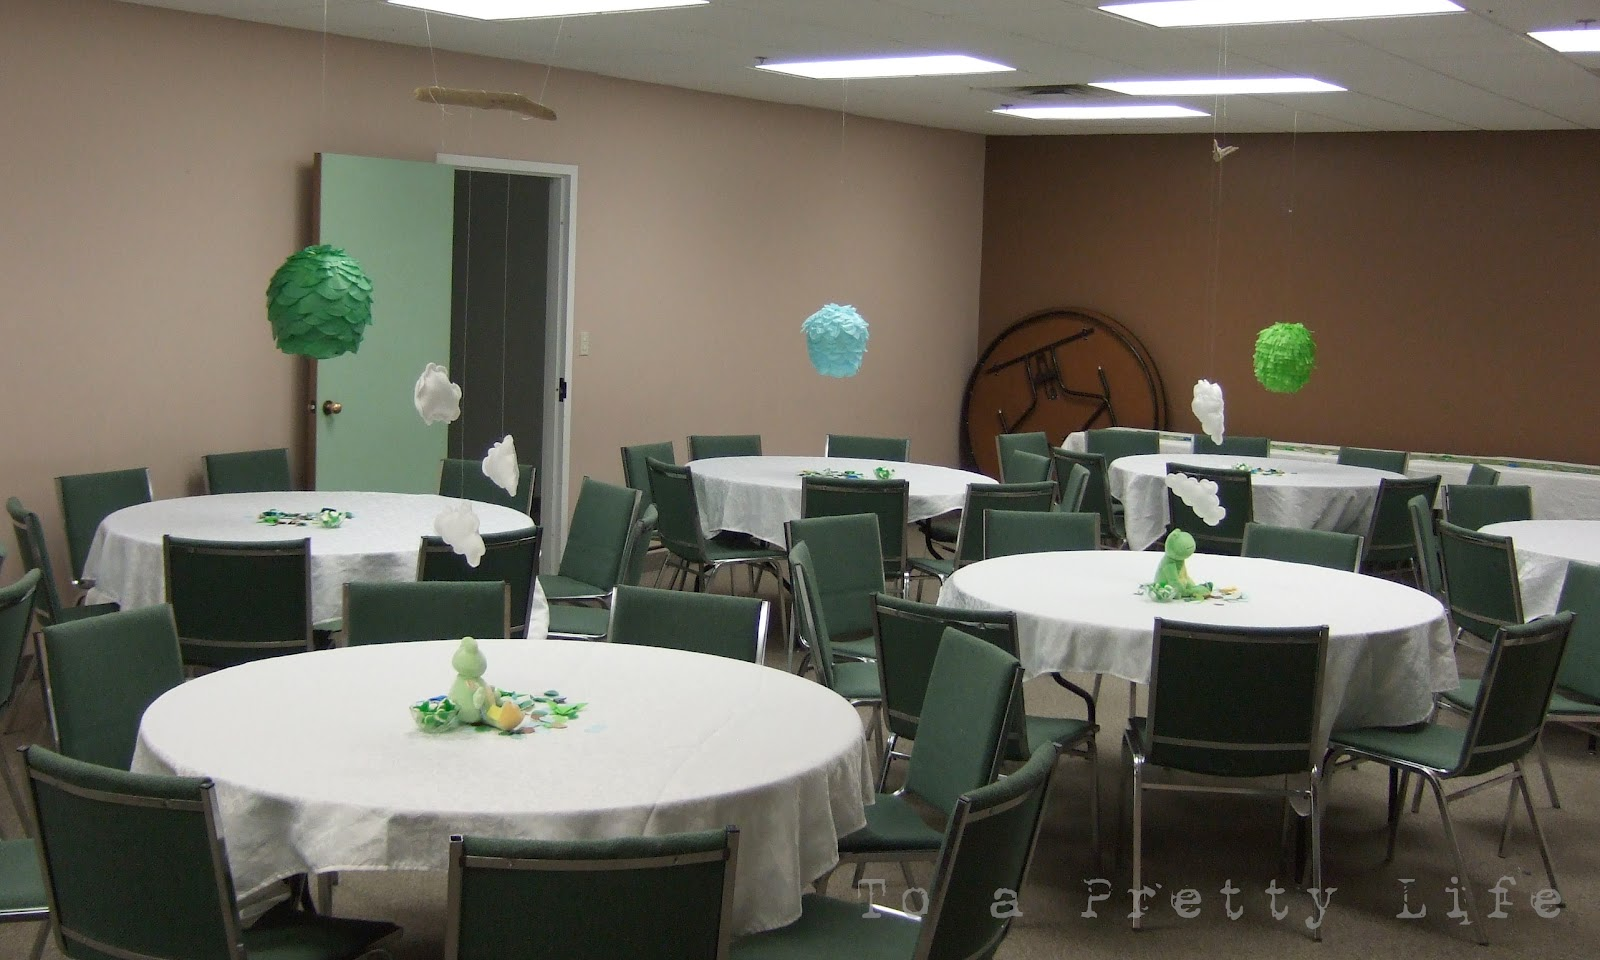 purple and green baby shower decorations. Olive Green and Baby Blue  Frog Shower Decorations To a Pretty Life